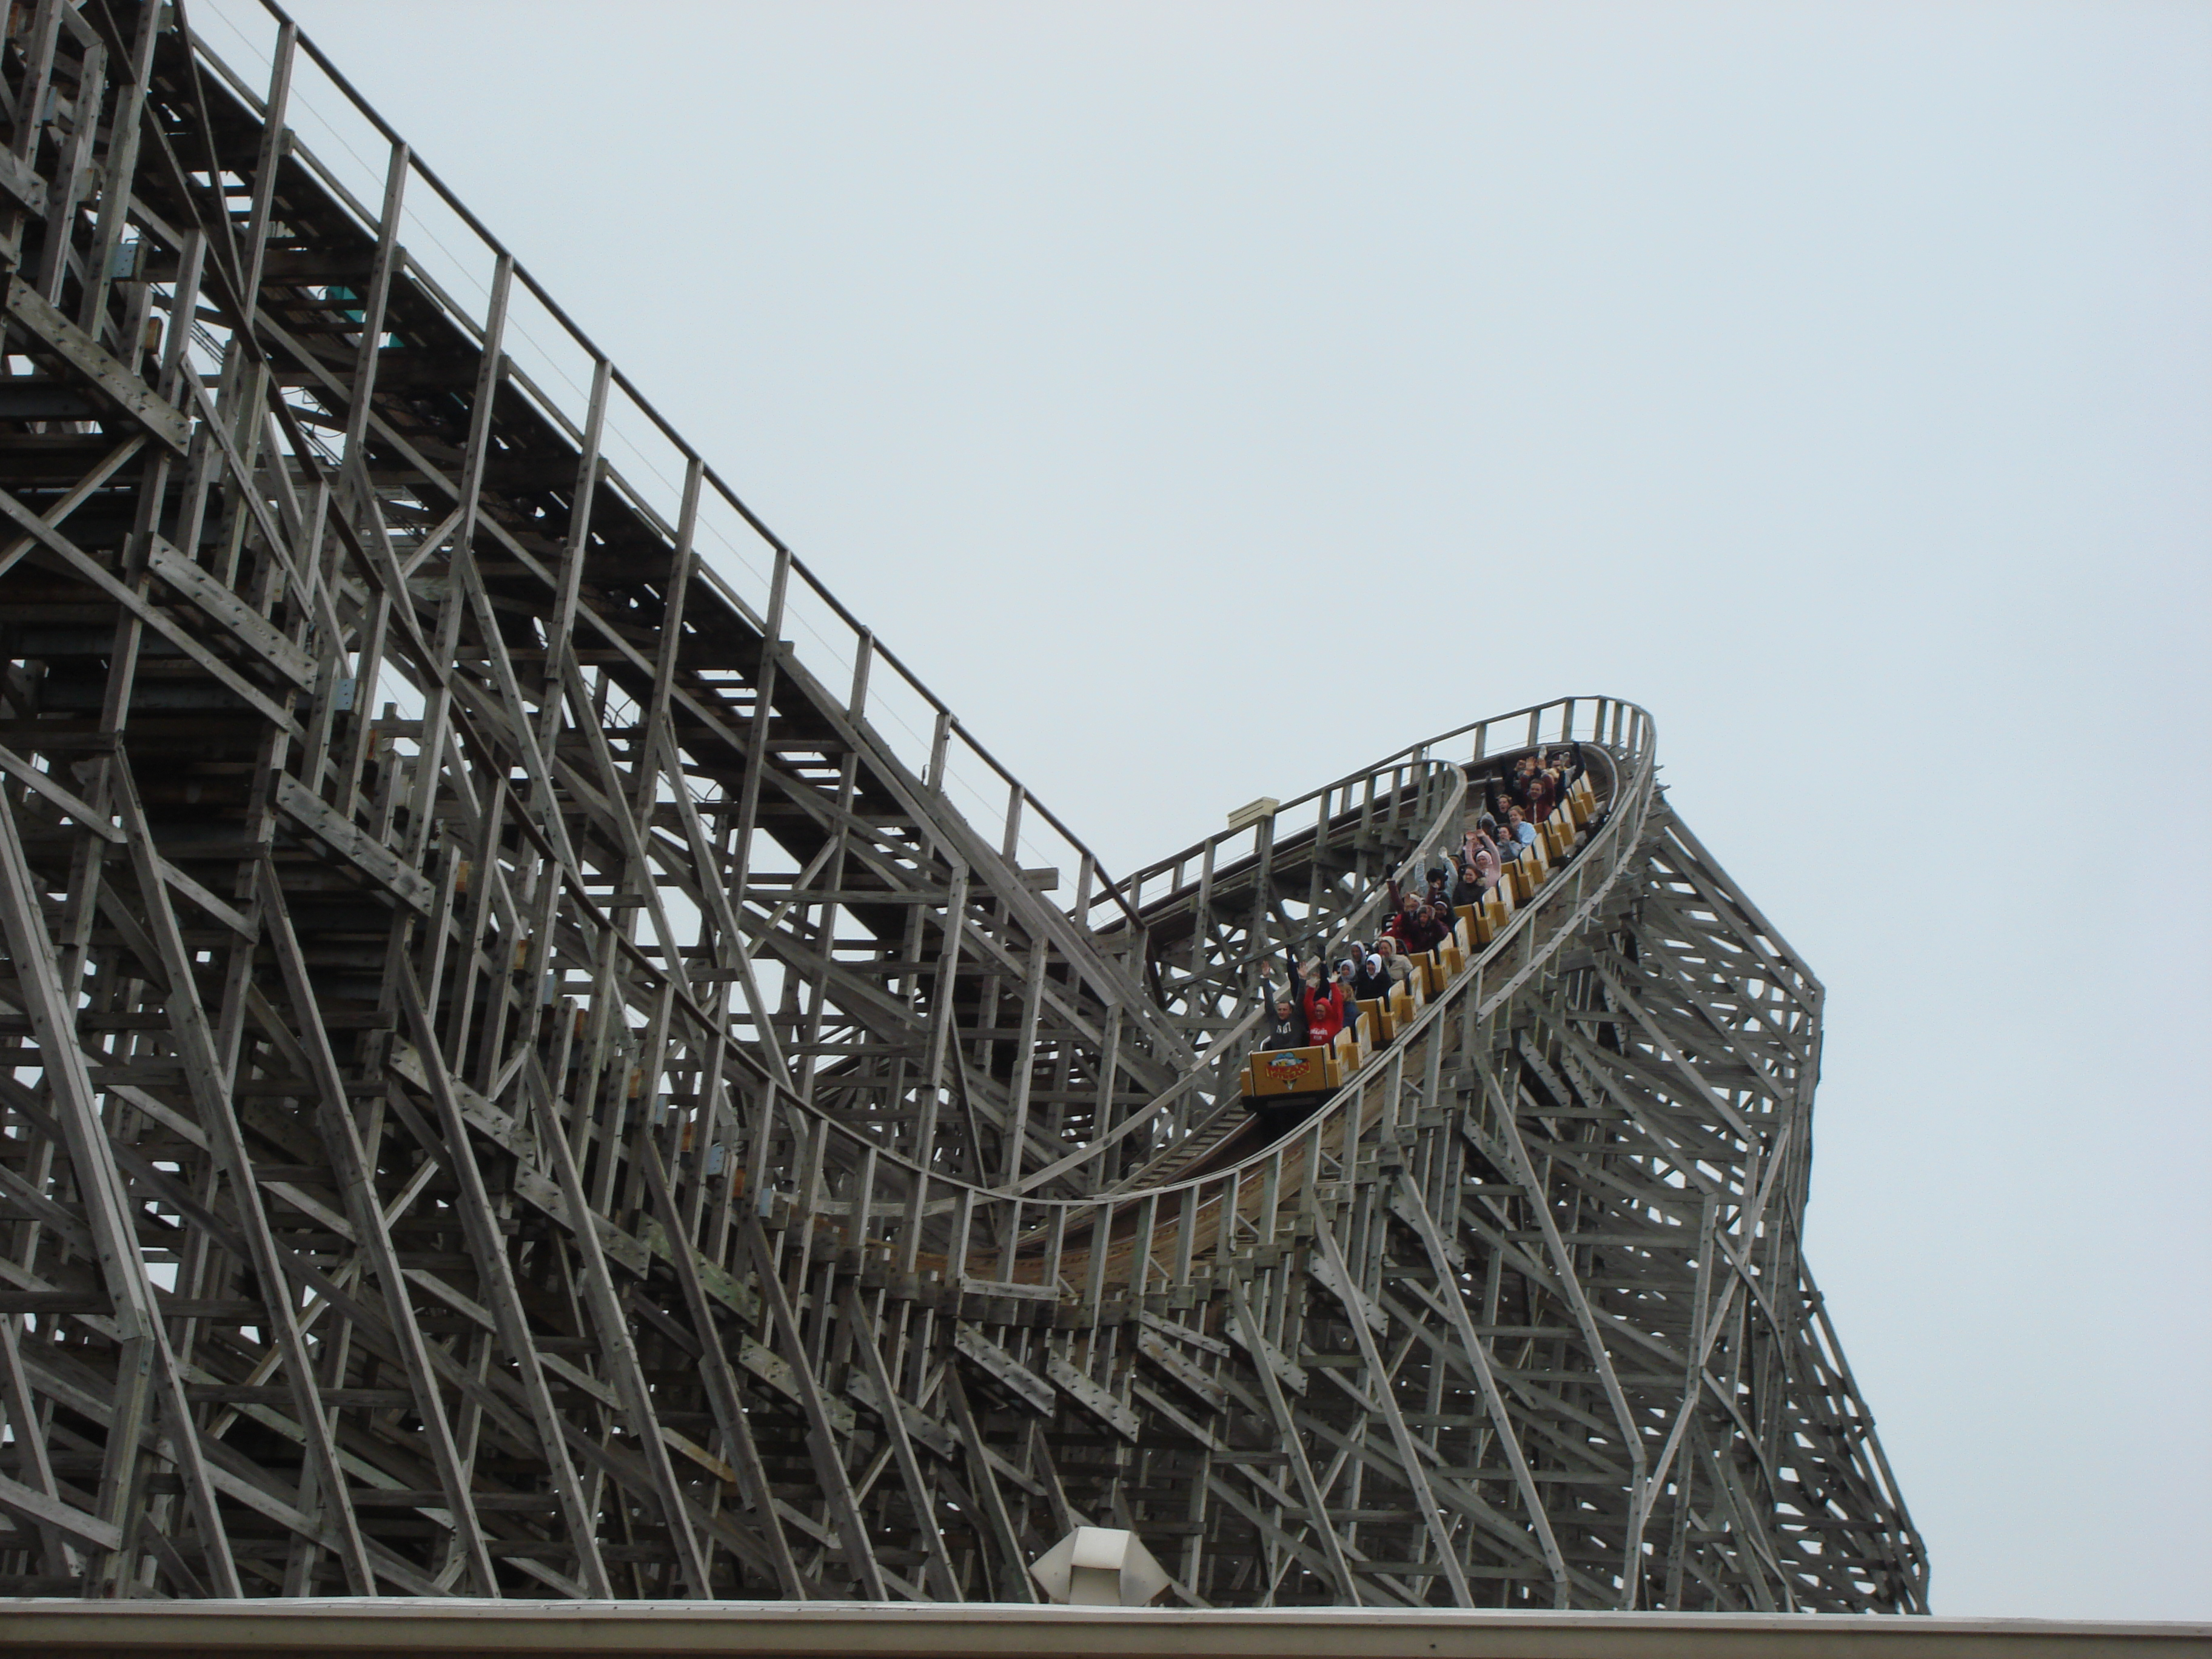 Wooden Roller Coaster Wikipedia